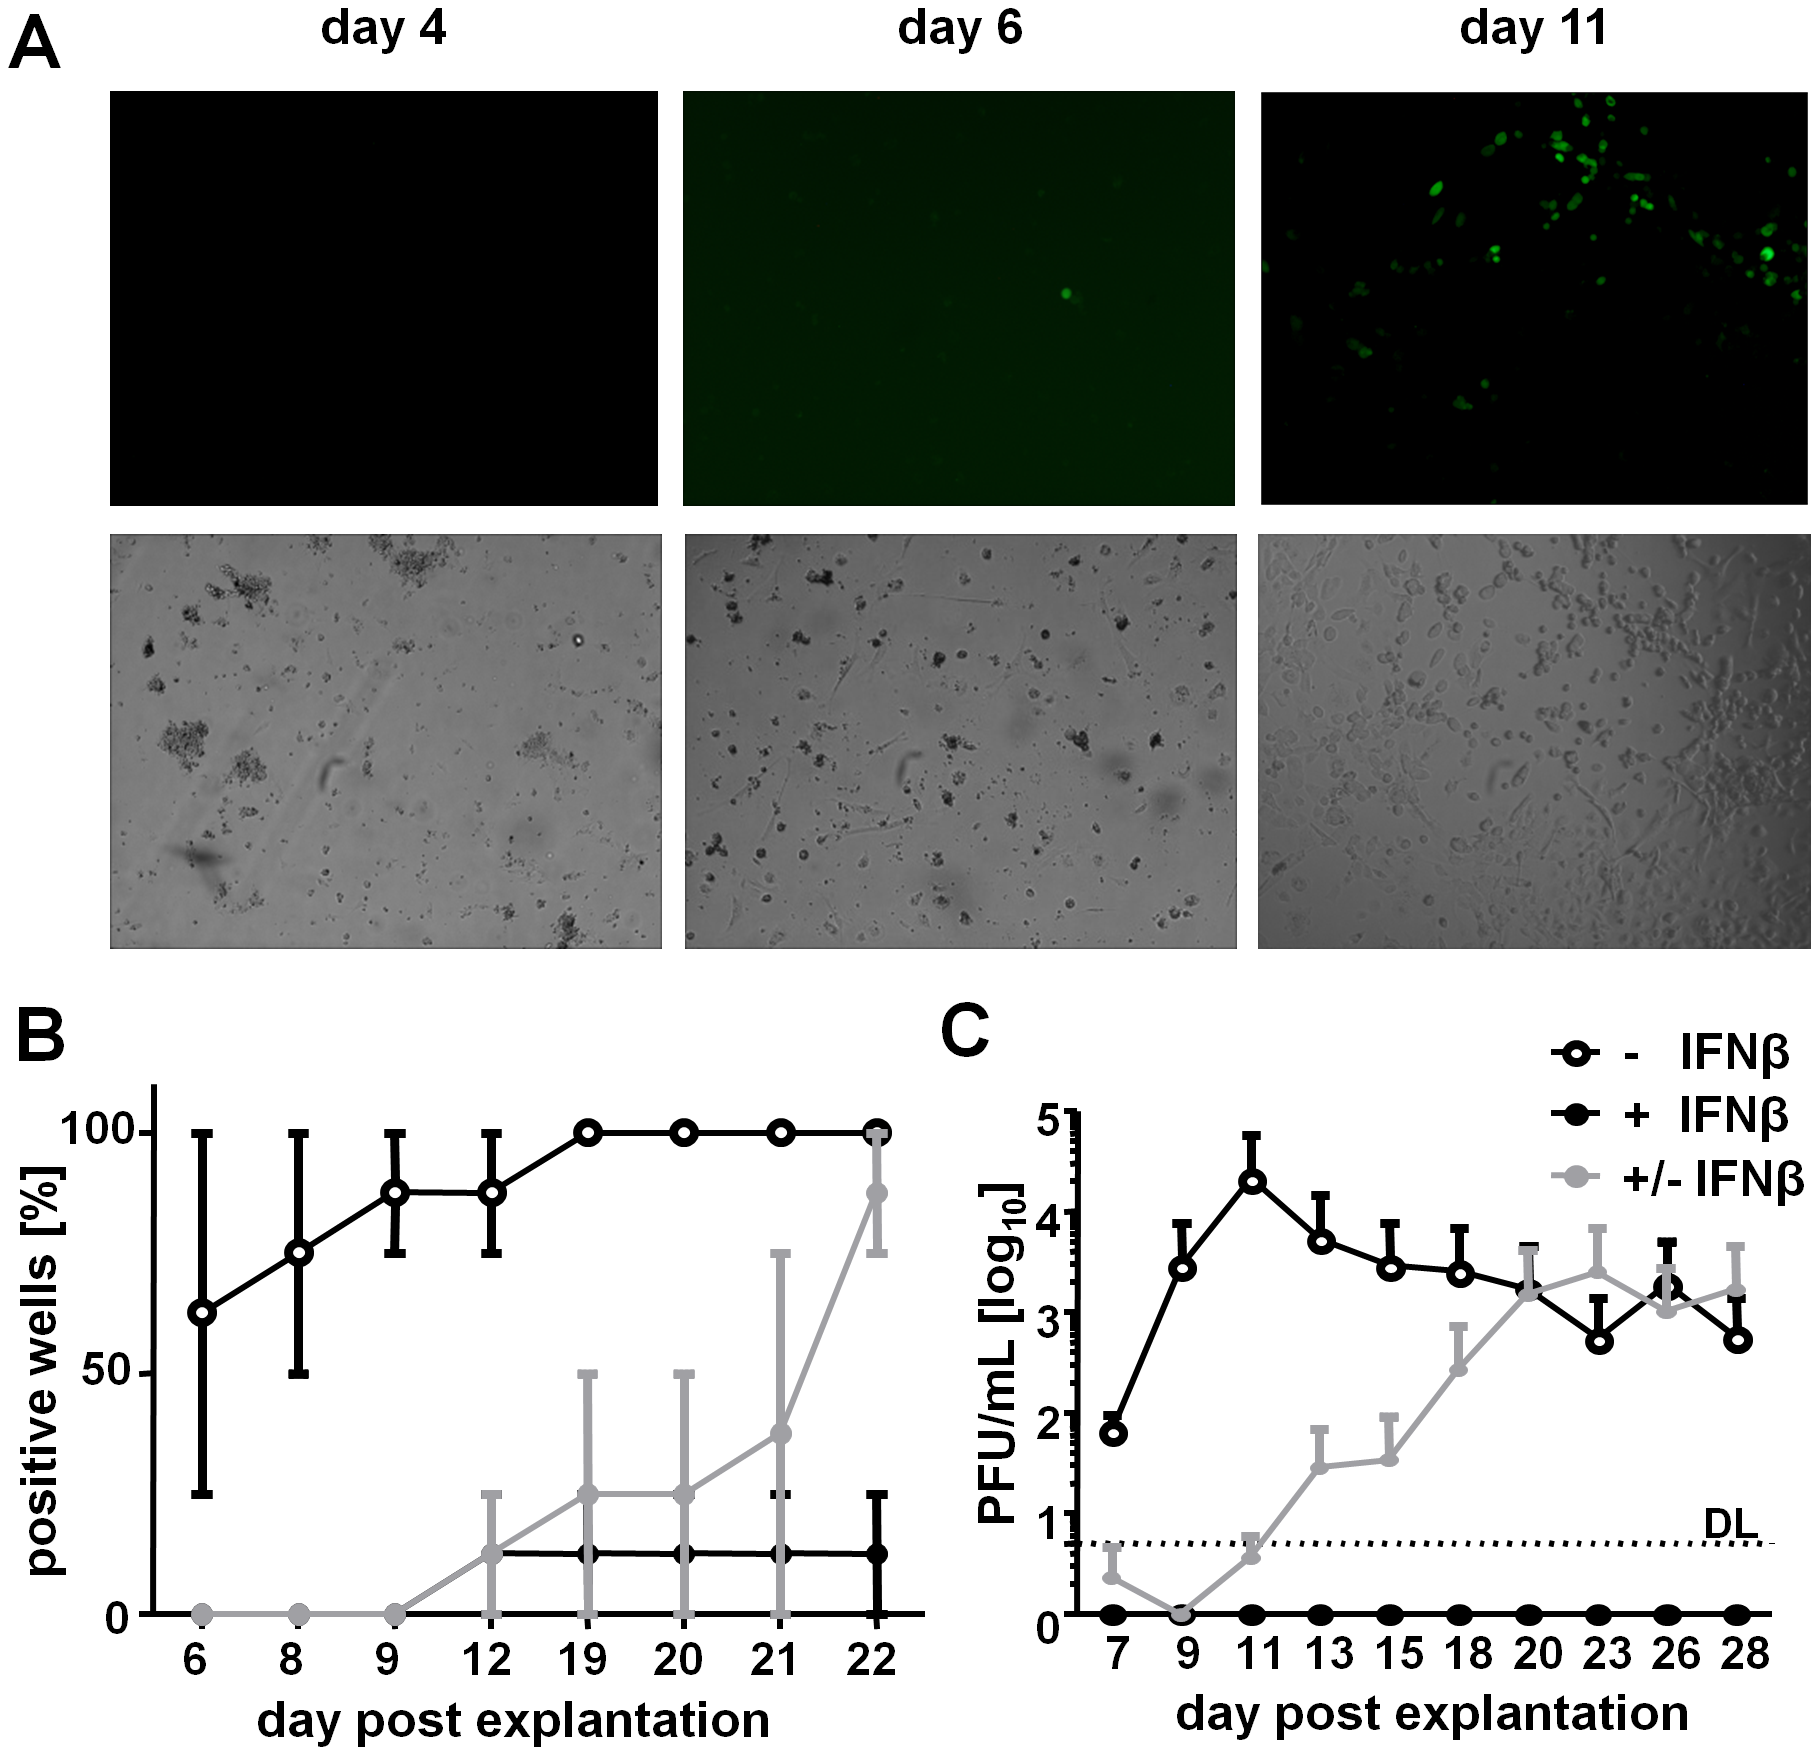 IFNβ represses MCMV reactivation from <i>in vivo</i> infected LSECs.